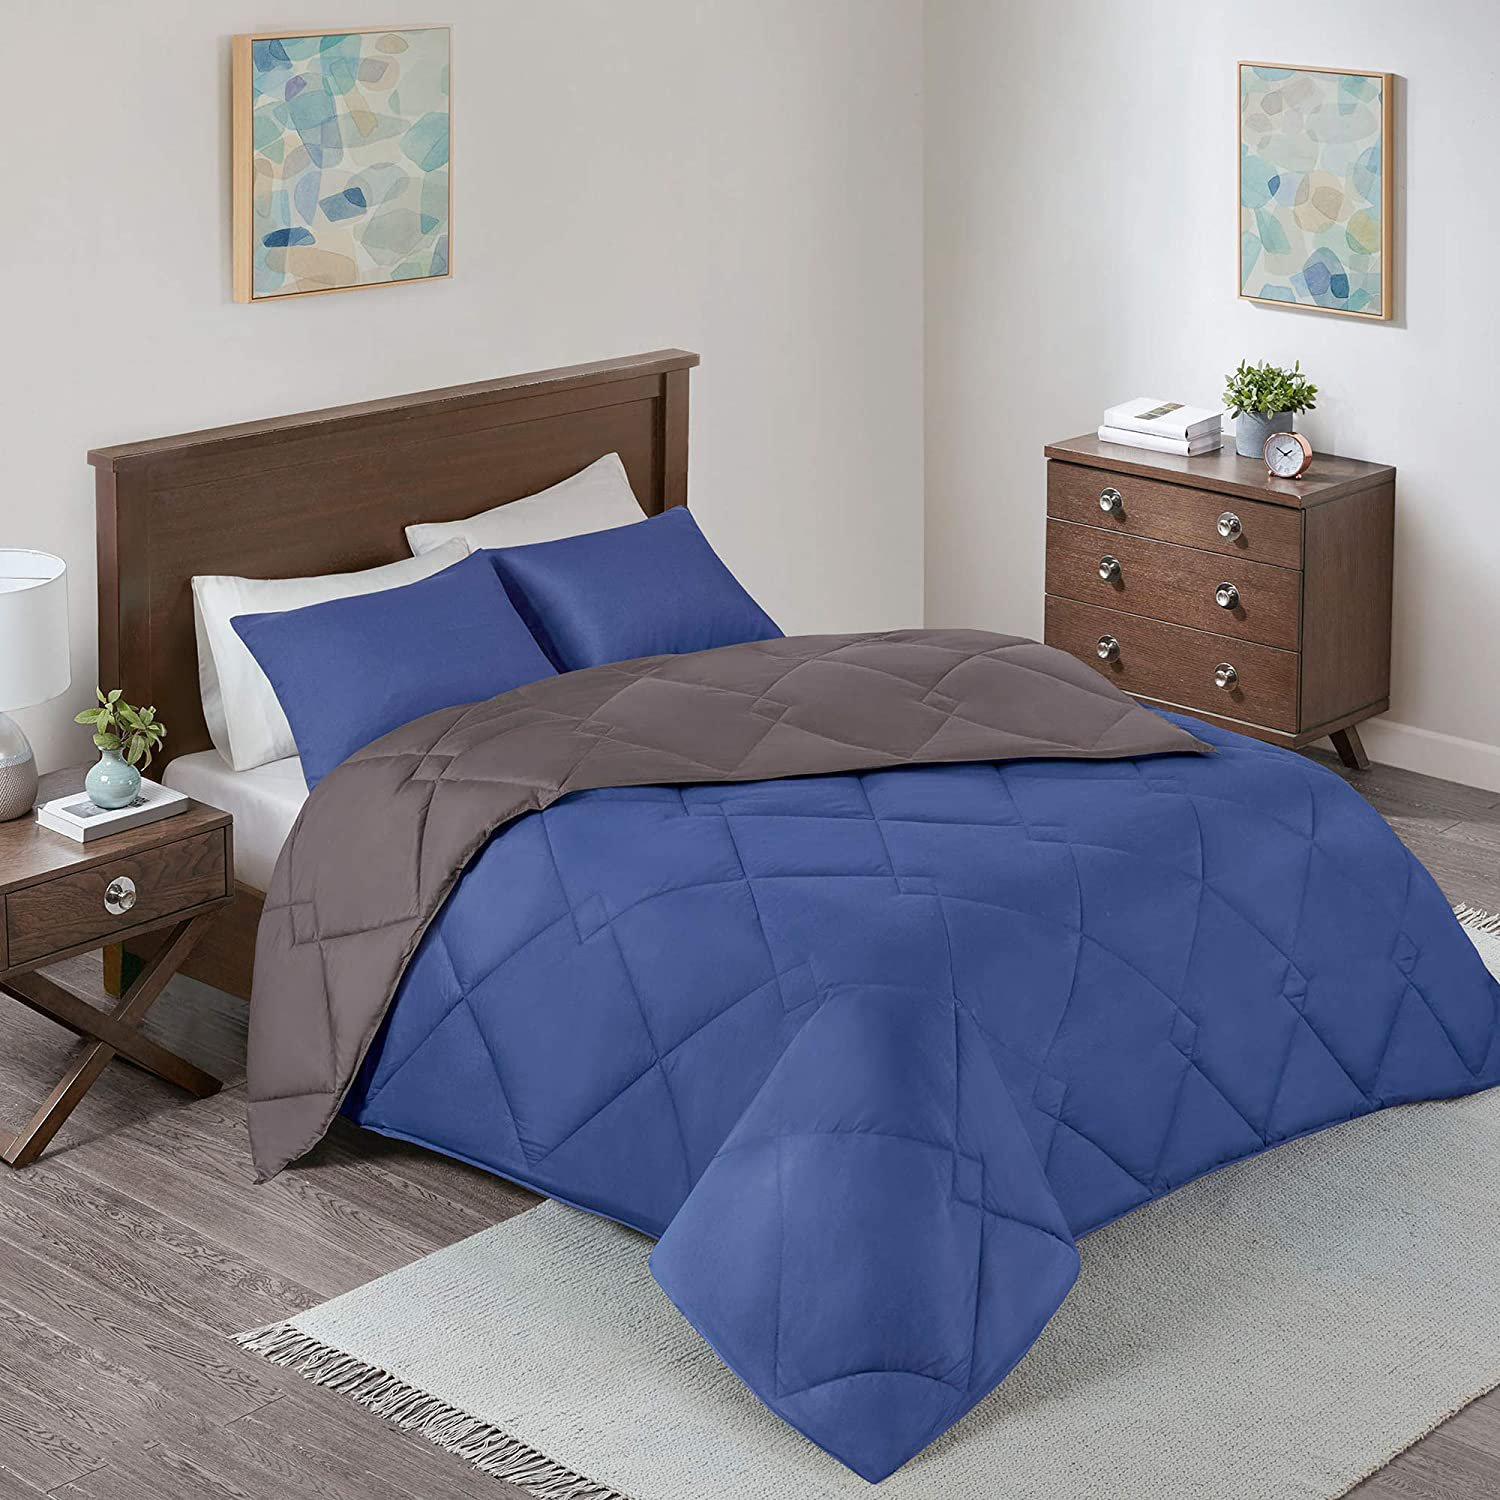 Comfort Spaces Vixie 2 Piece Comforter Set All Twin/Twin XL Navy/Charcoal